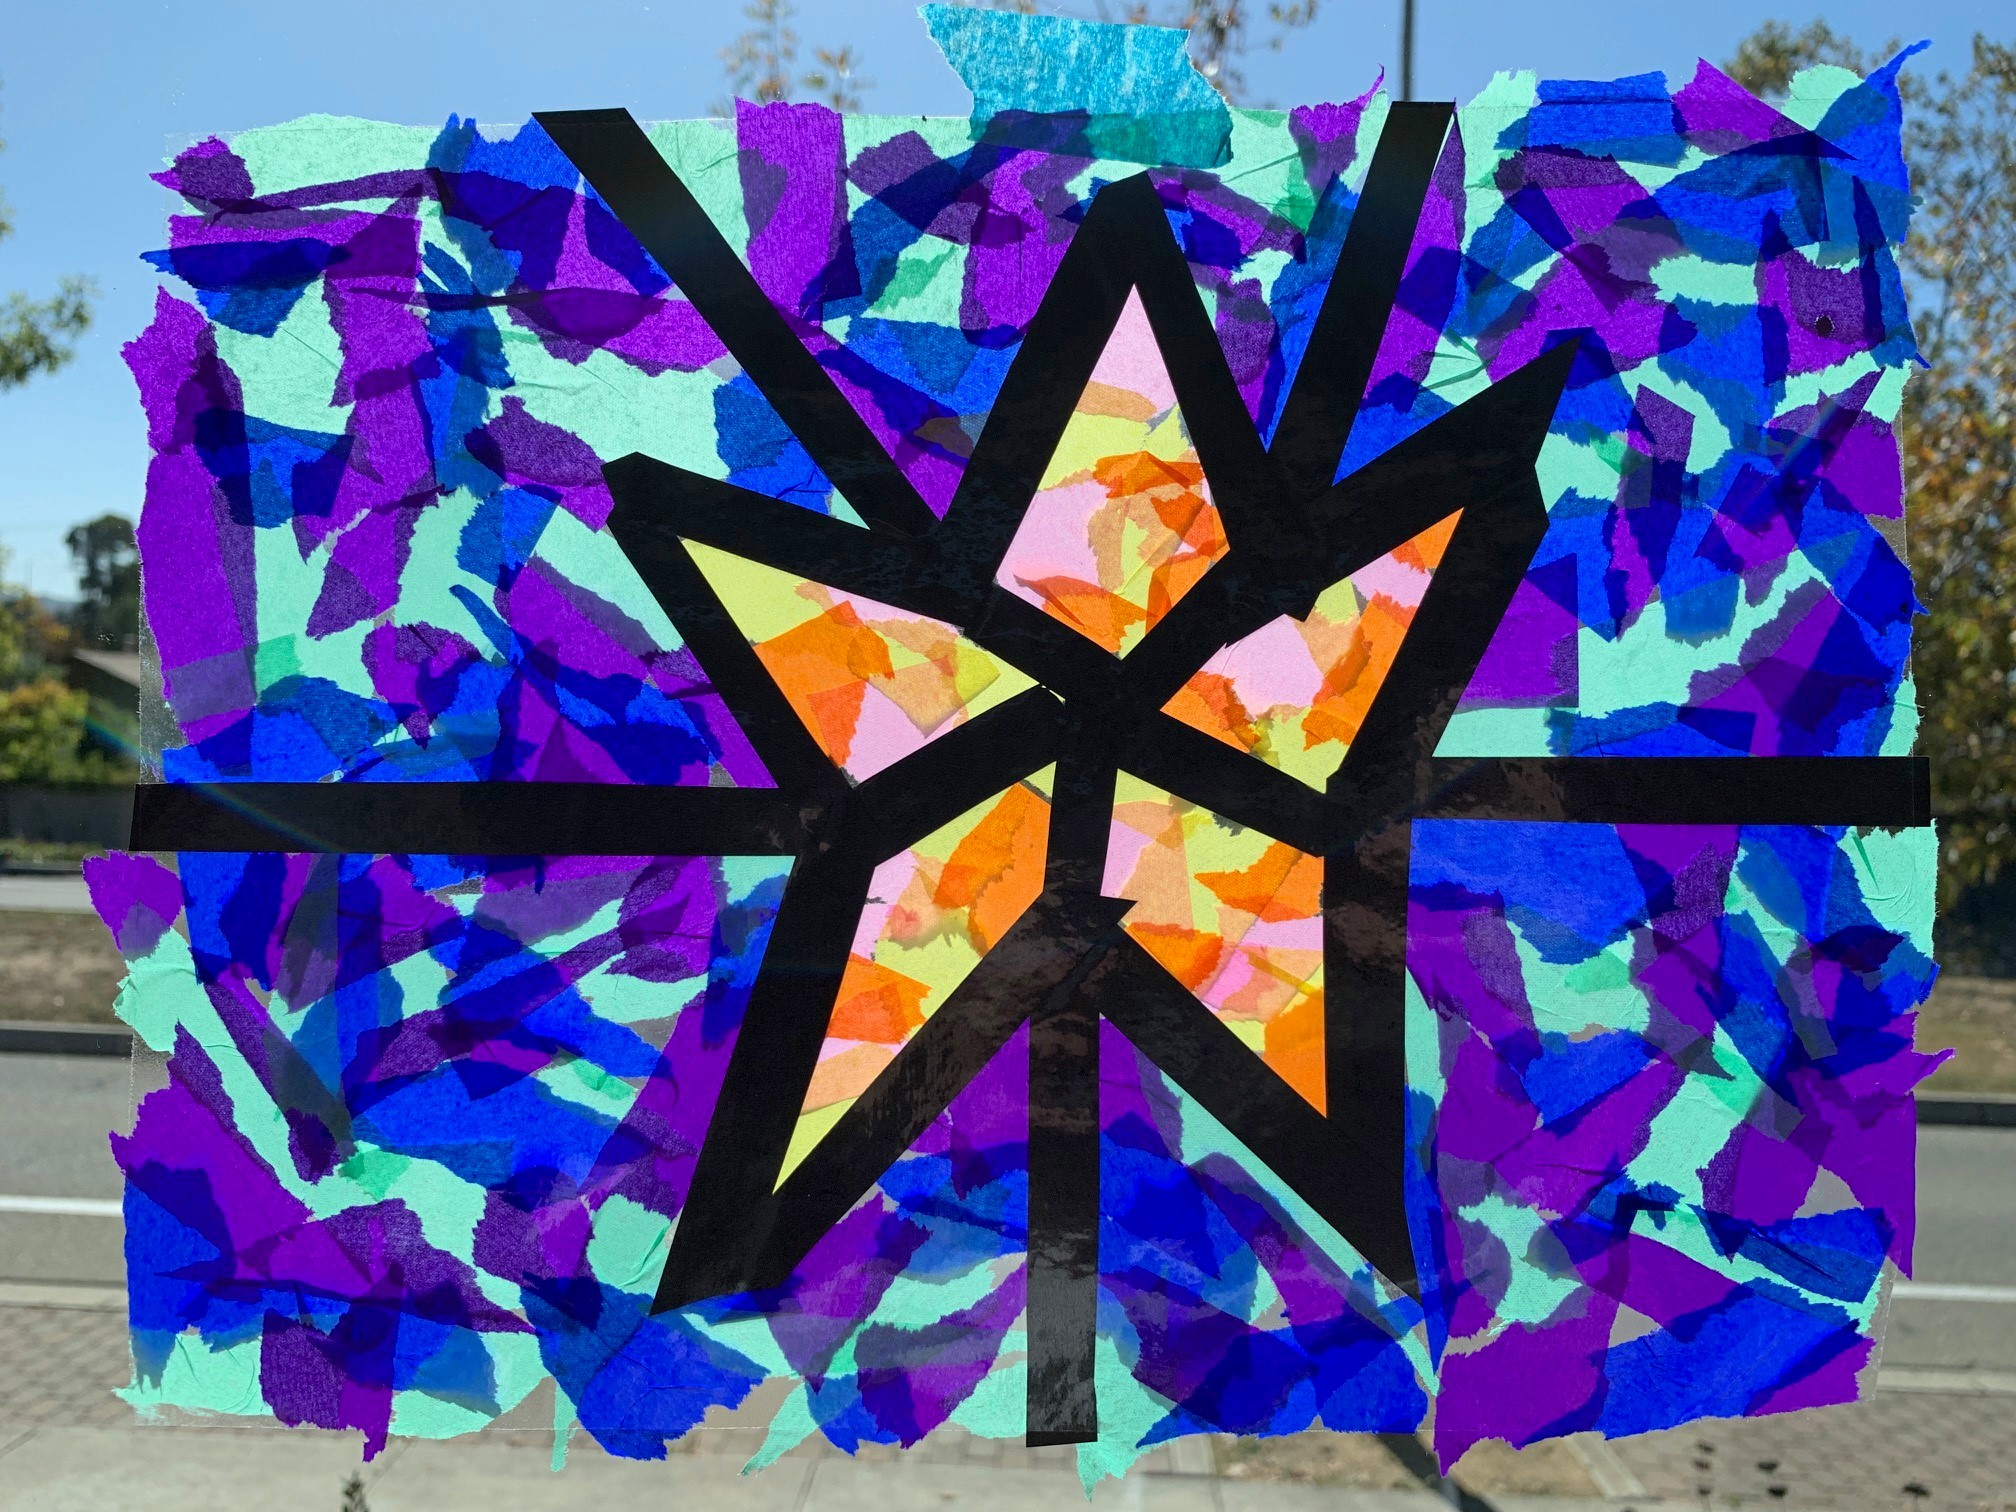 Family Art: Make a Paper Stained Glass Window